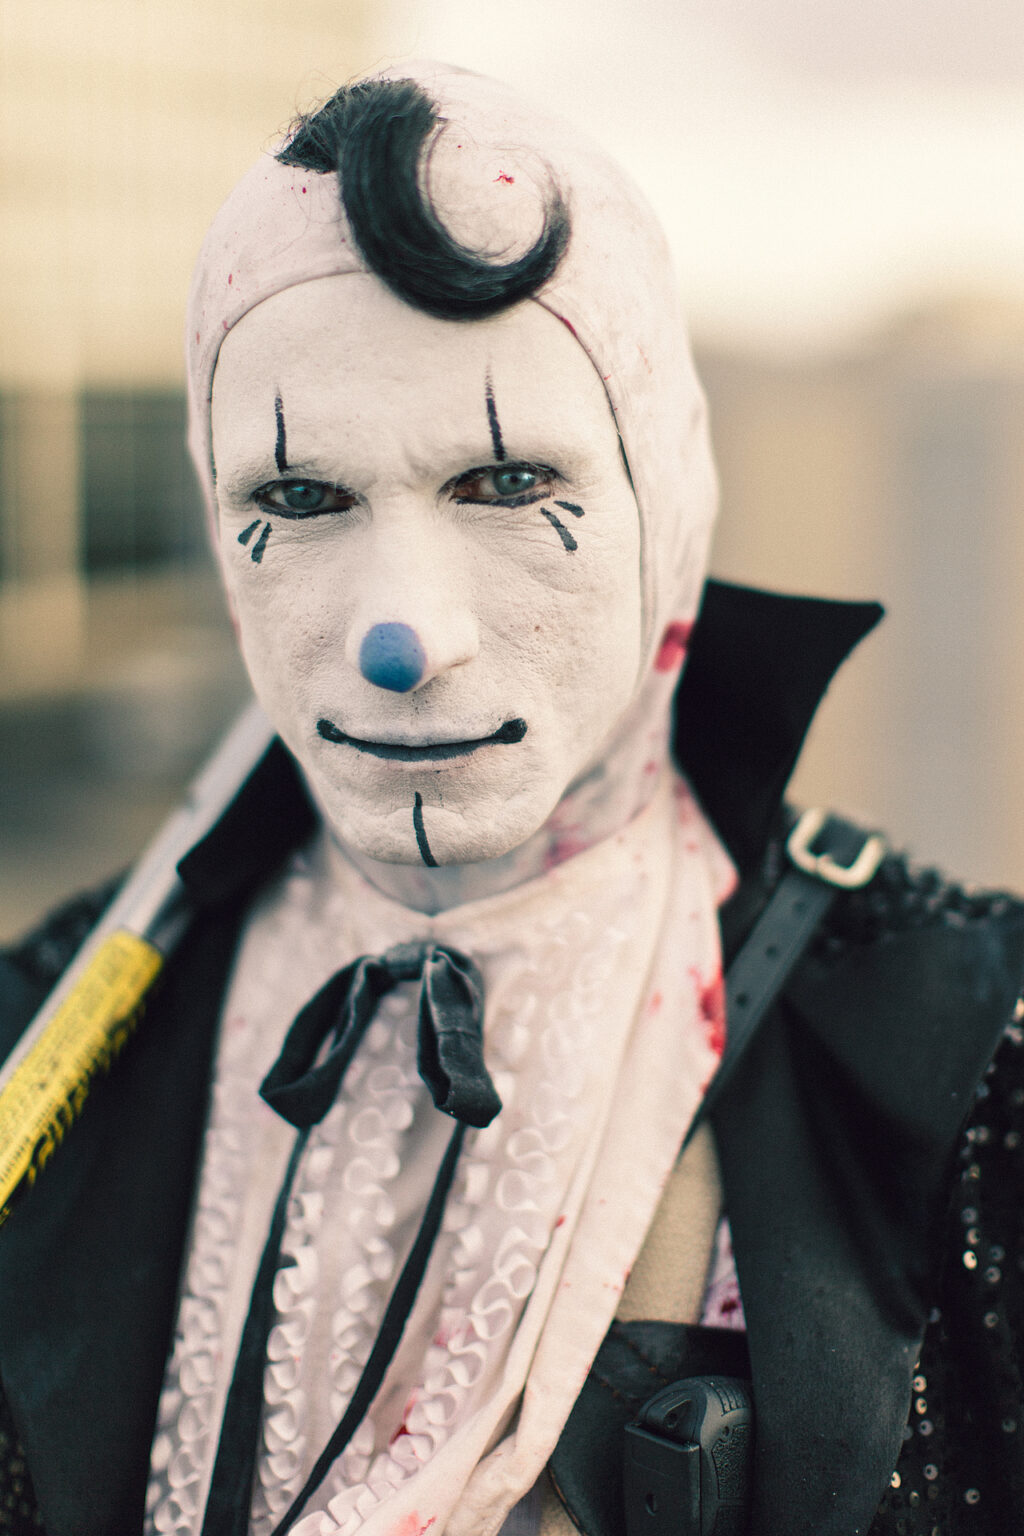 bill oberst jr 1024x1536 - Bring in the Clowns! Join Our CIRCUS OF THE DEAD Virtual Reunion/Q&A on Tuesday July 14th at 6 PM (PST)